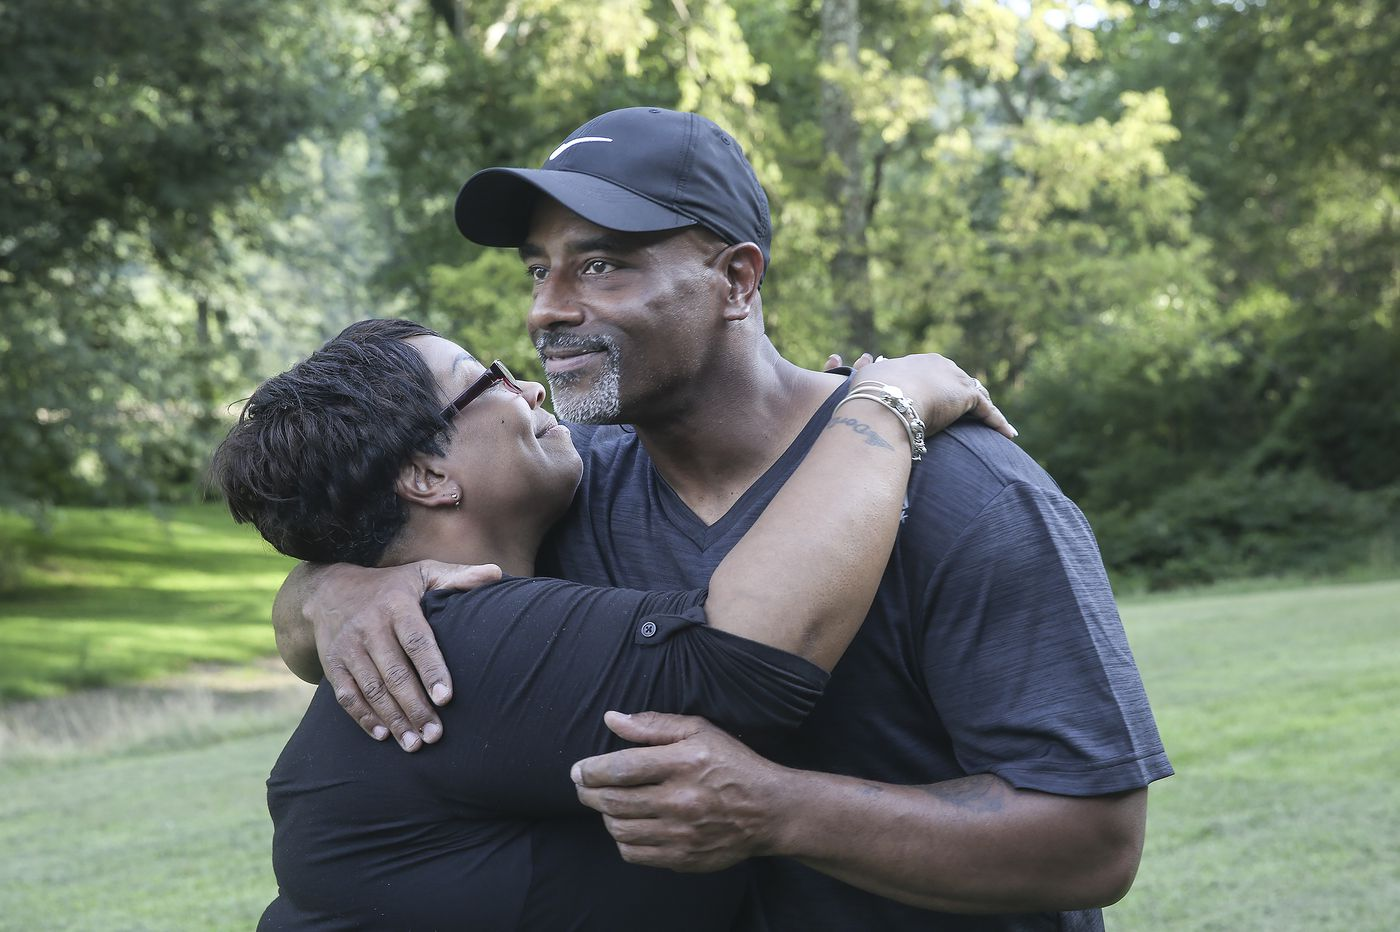 Philly to pay $9.8M to man exonerated who spent 28 years in prison after wrongful conviction for murder